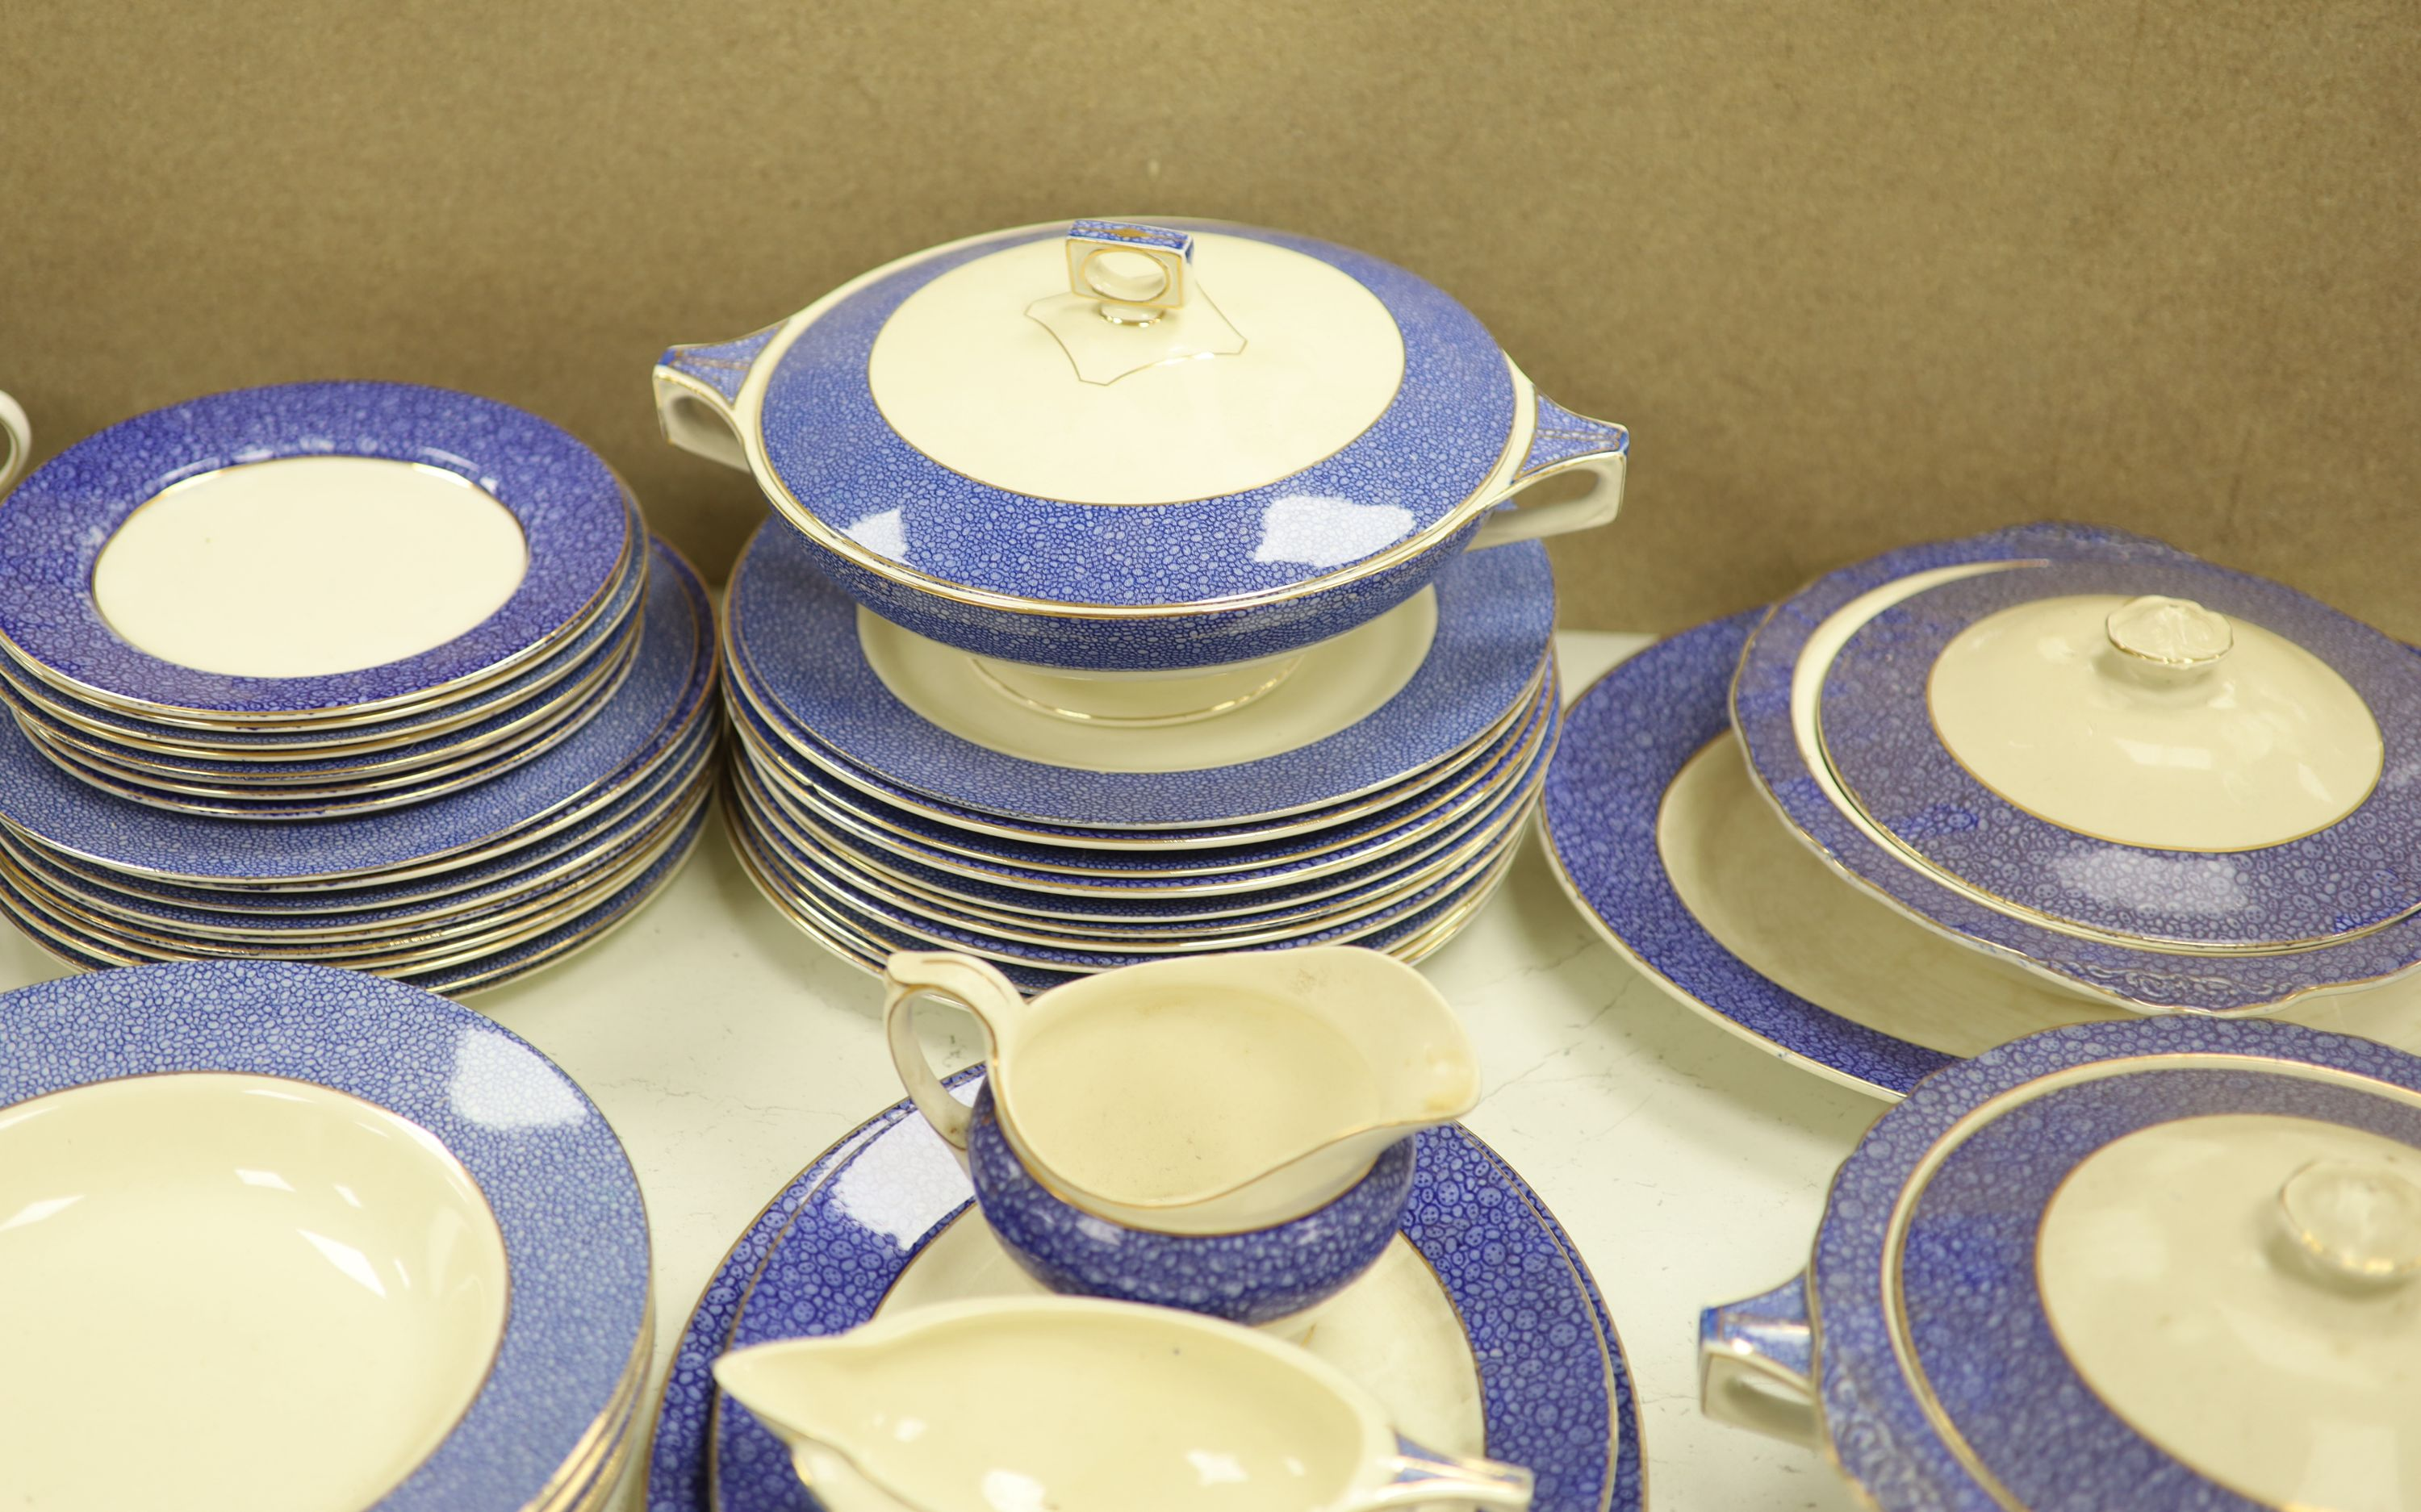 A Wedgwood 'Blue Siam' pattern part dinner service and other mixed ceramics - Image 8 of 8